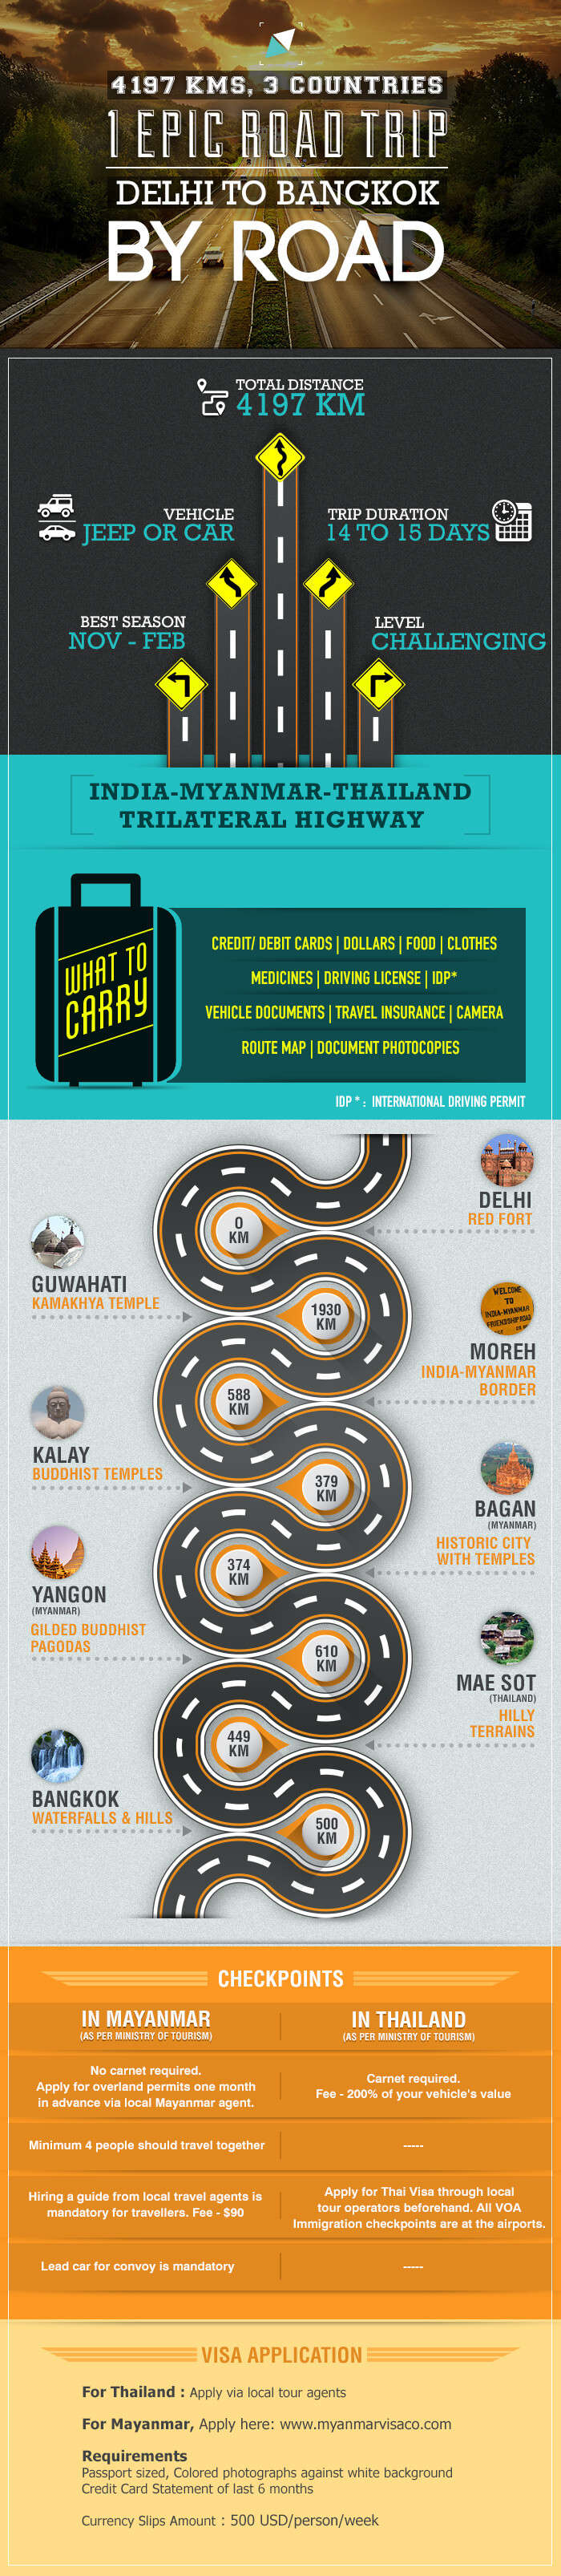 The Epic Road Trip - New Delhi to Bangkok - infographic